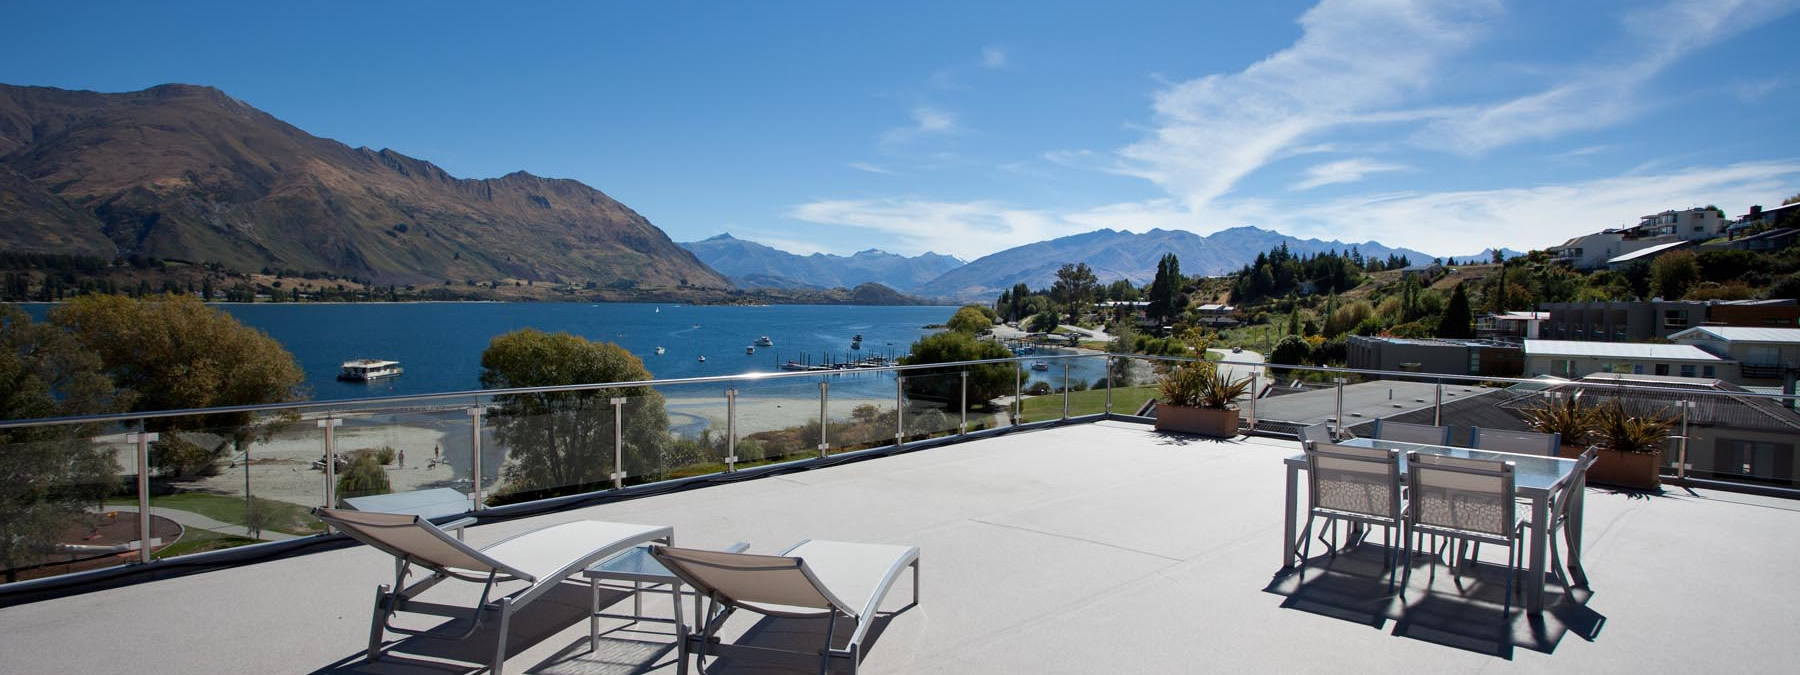 Lakeside Apartments Wanaka Luxury Serviced Apartments Penthouse Wanaka Accommodation